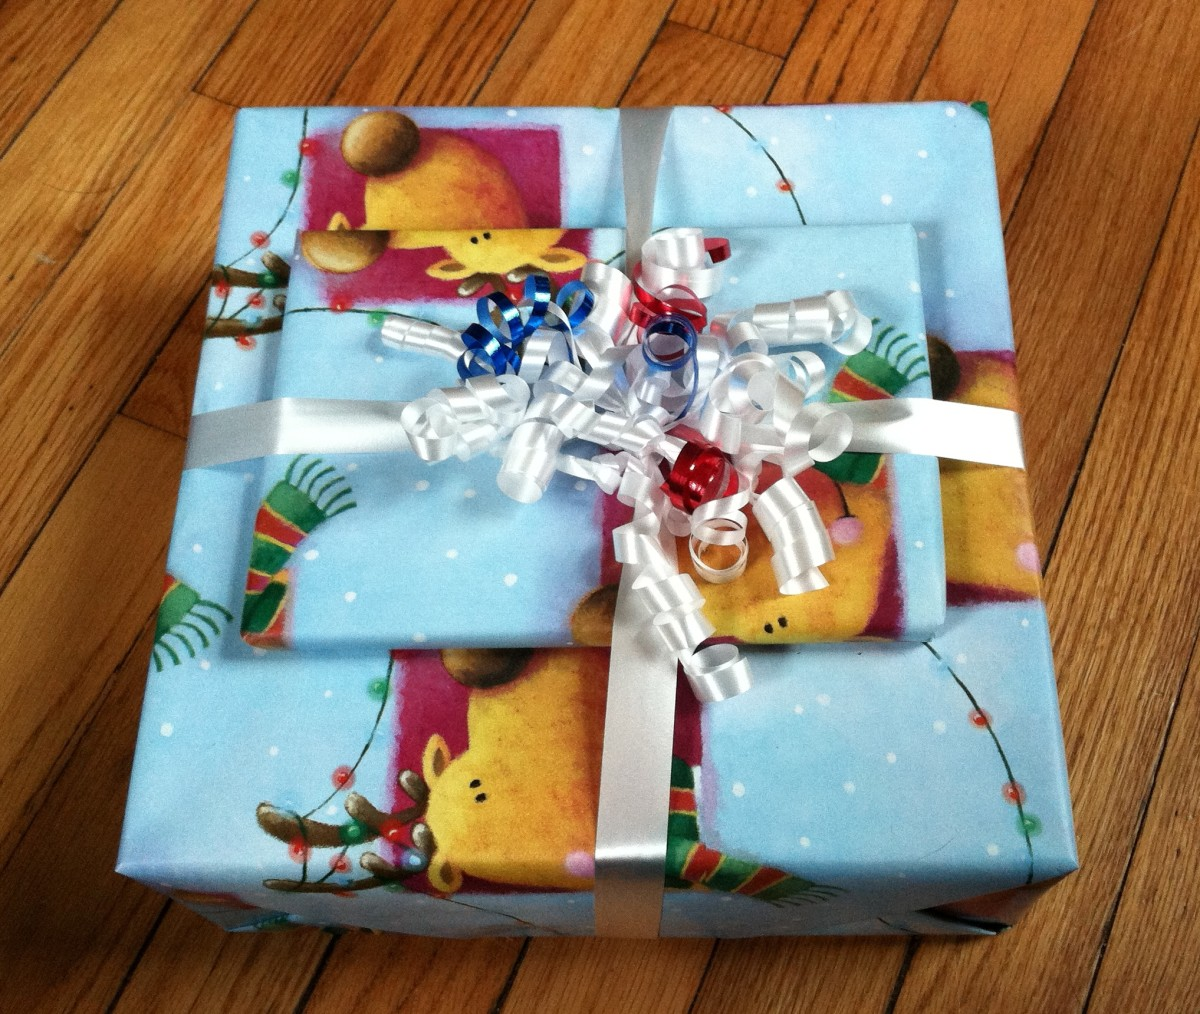 How to Wrap Presents Properly